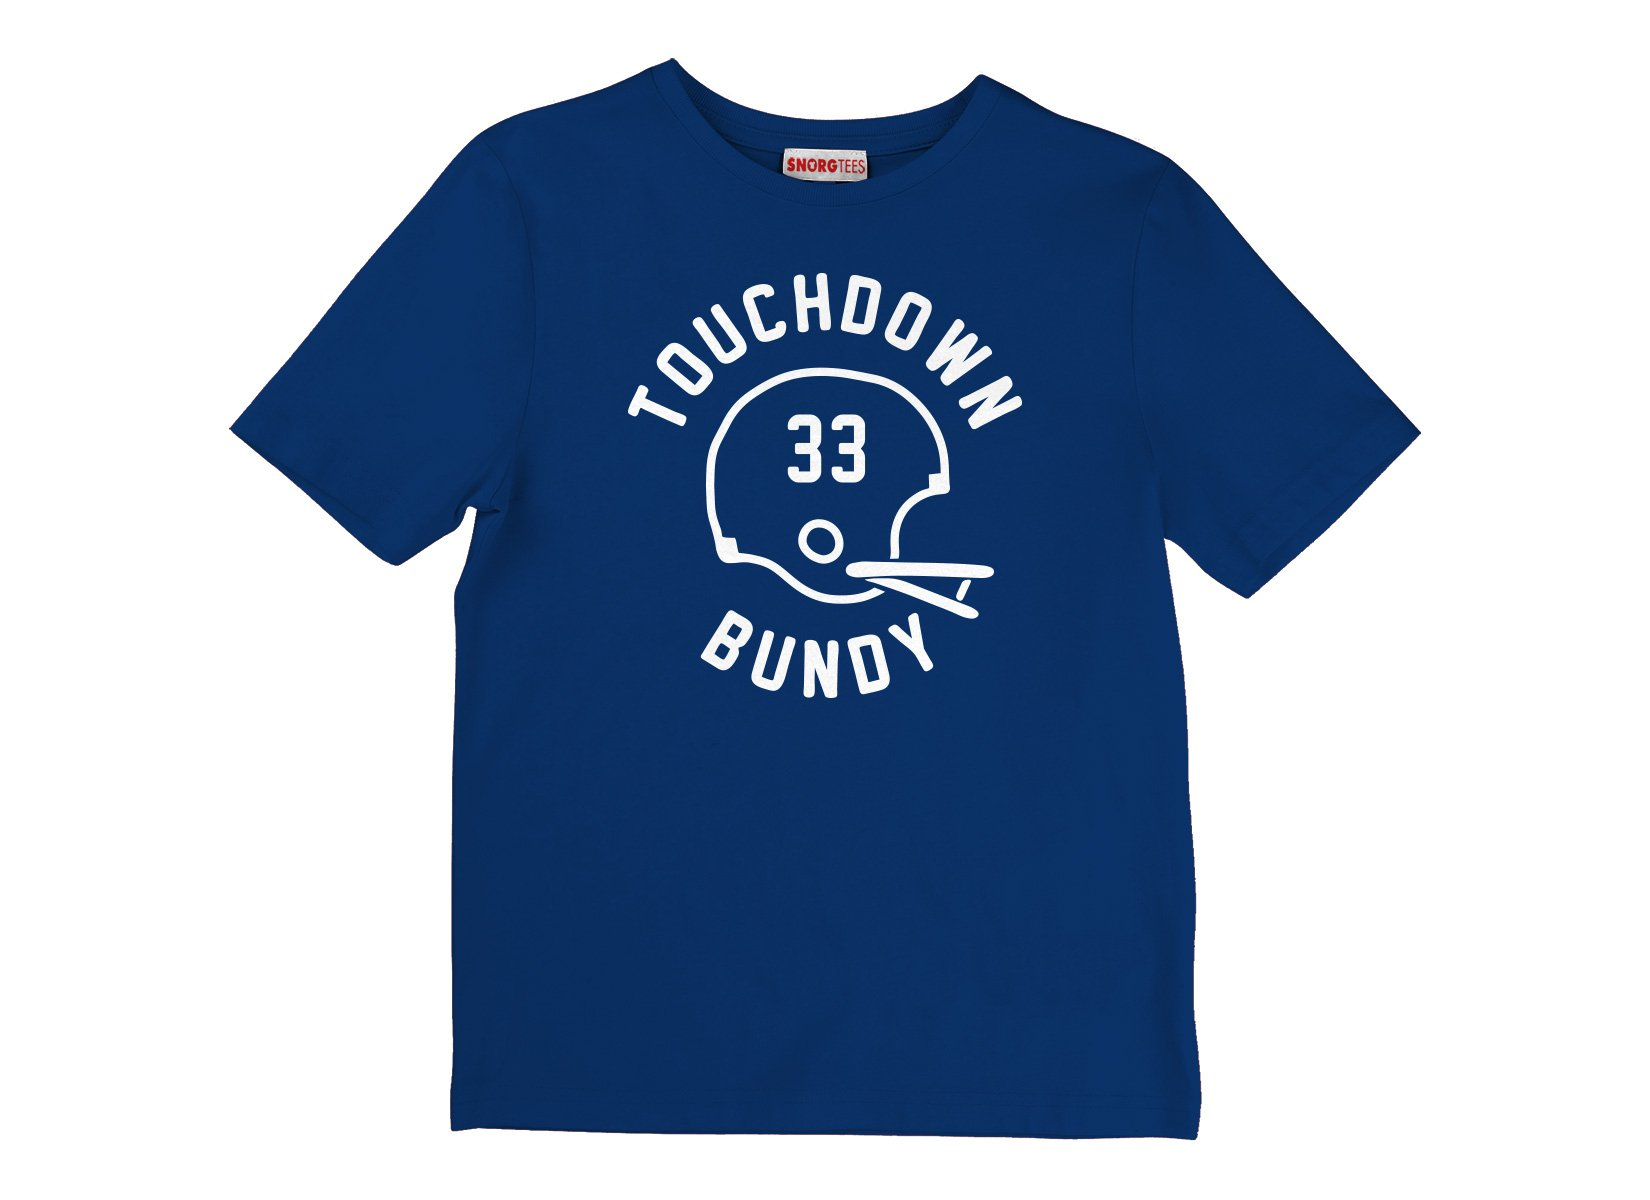 Touchdown Bundy on Kids T-Shirt